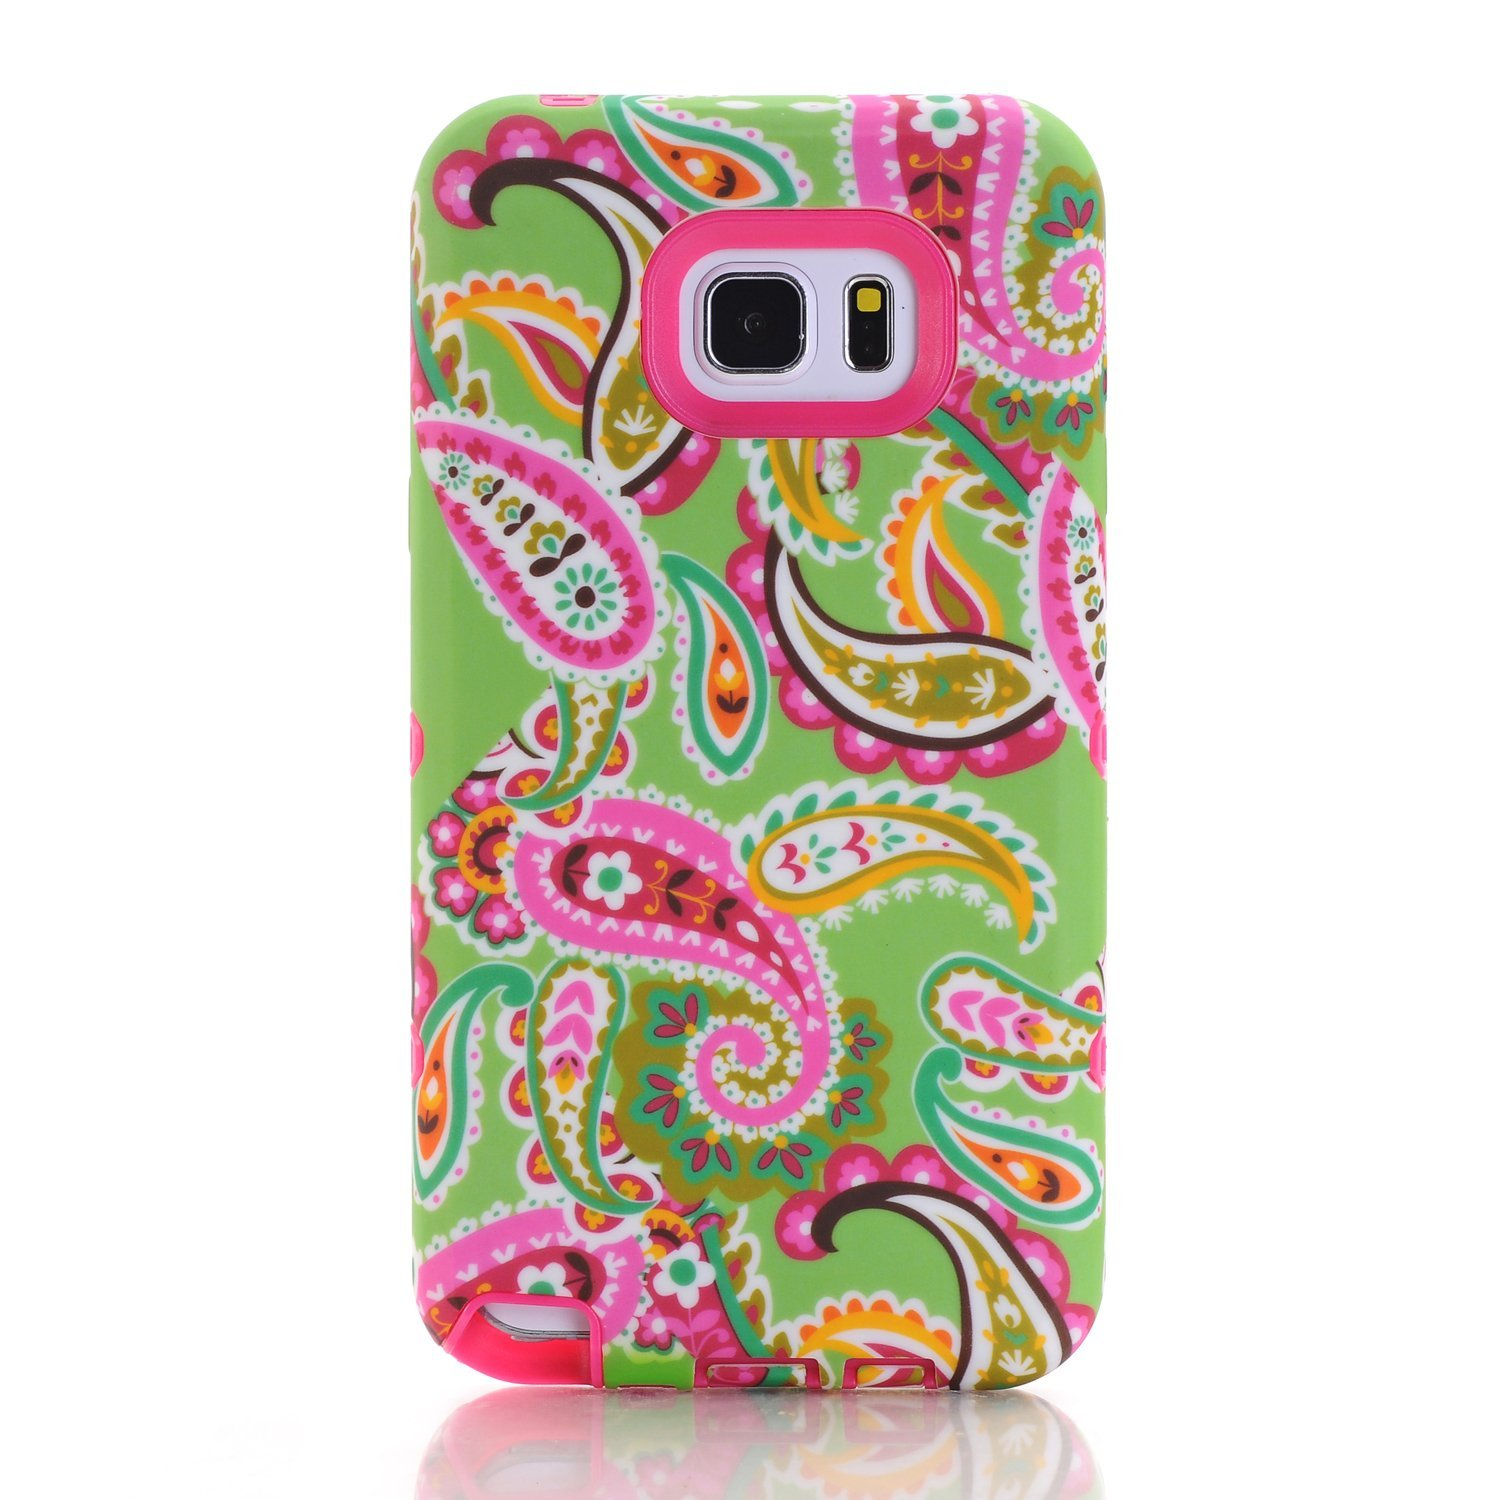 Rosepark Galaxy Note 5 Case,Note 5 Case, (TM) Paisley Flower Pattern 3in1 Hybrid Rugged Heavy Duty Protection Shockproof Case Case for Samsung Galaxy Note 5(Hot Pink),with Screen Protector+Stylus